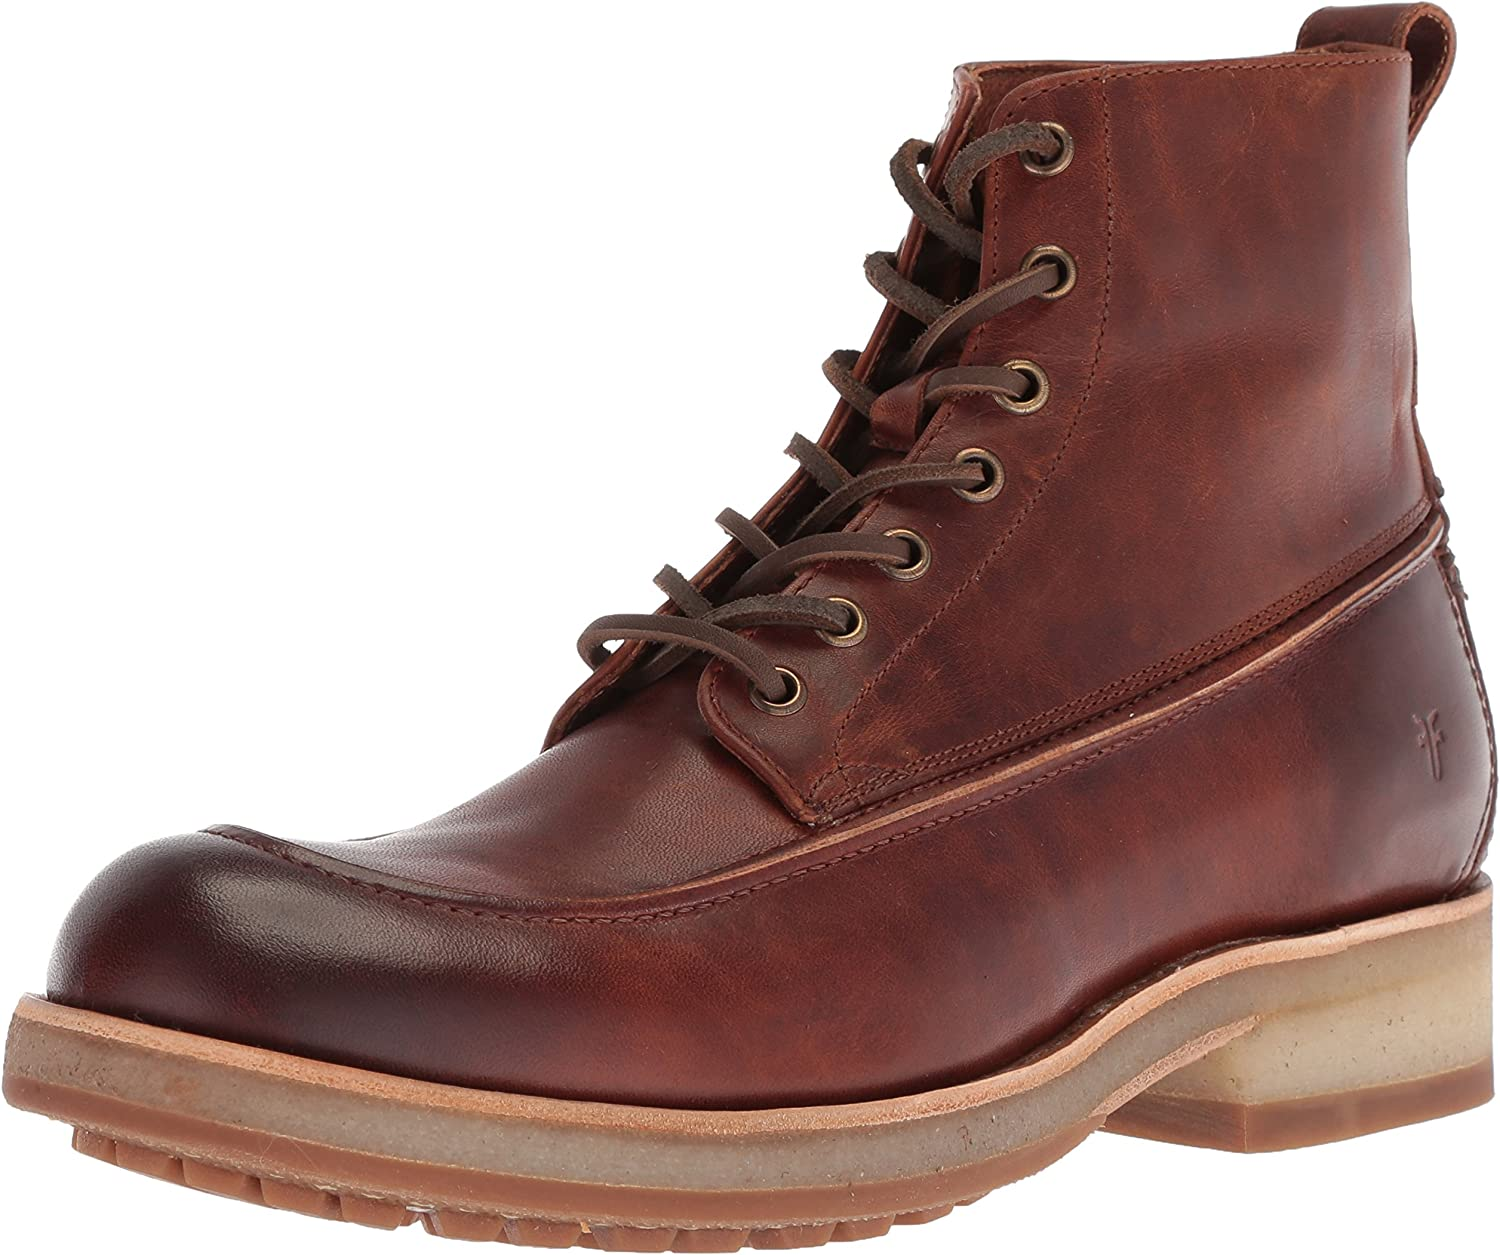 FRYE Men's Rainer WorkStiefel Fashion Stiefel, Cognac, 11 M